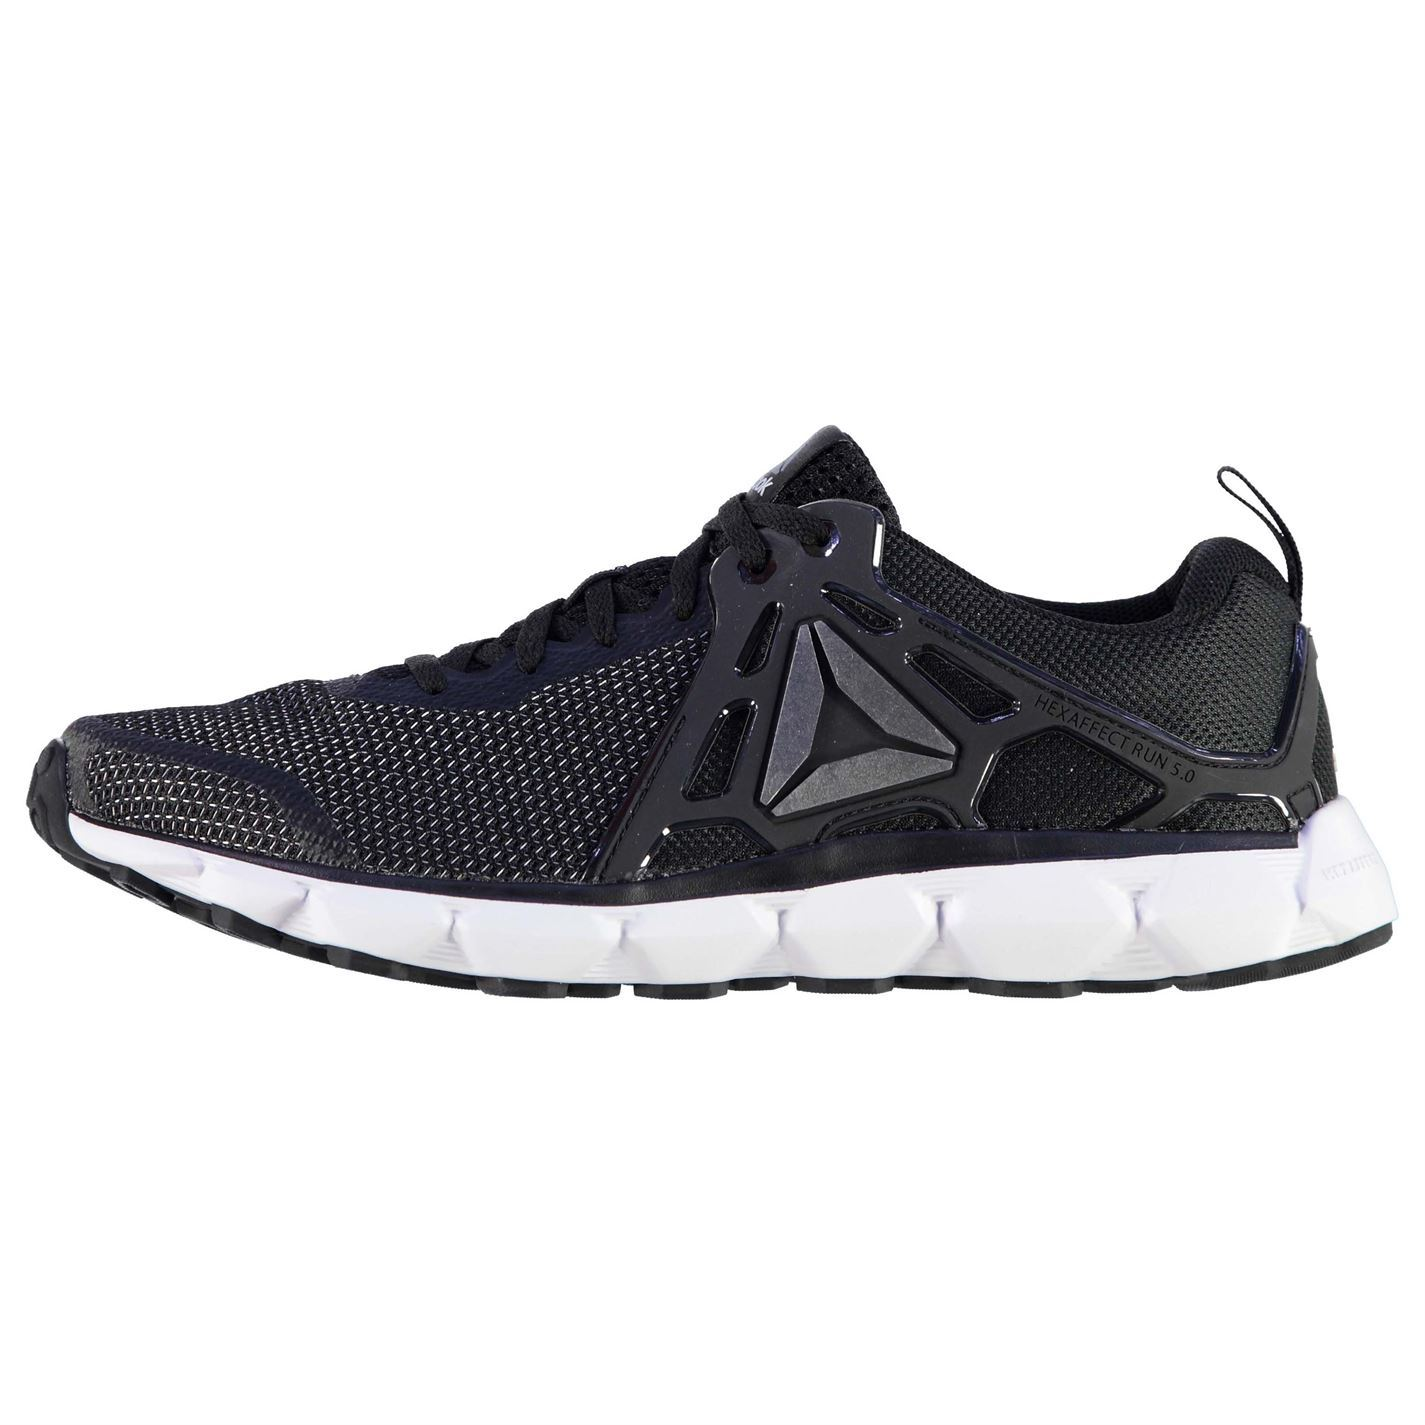 ... Reebok Hex Affect Running Shoes Mens Black White Trainers Sneakers  Sports Shoes ... 637f342c8